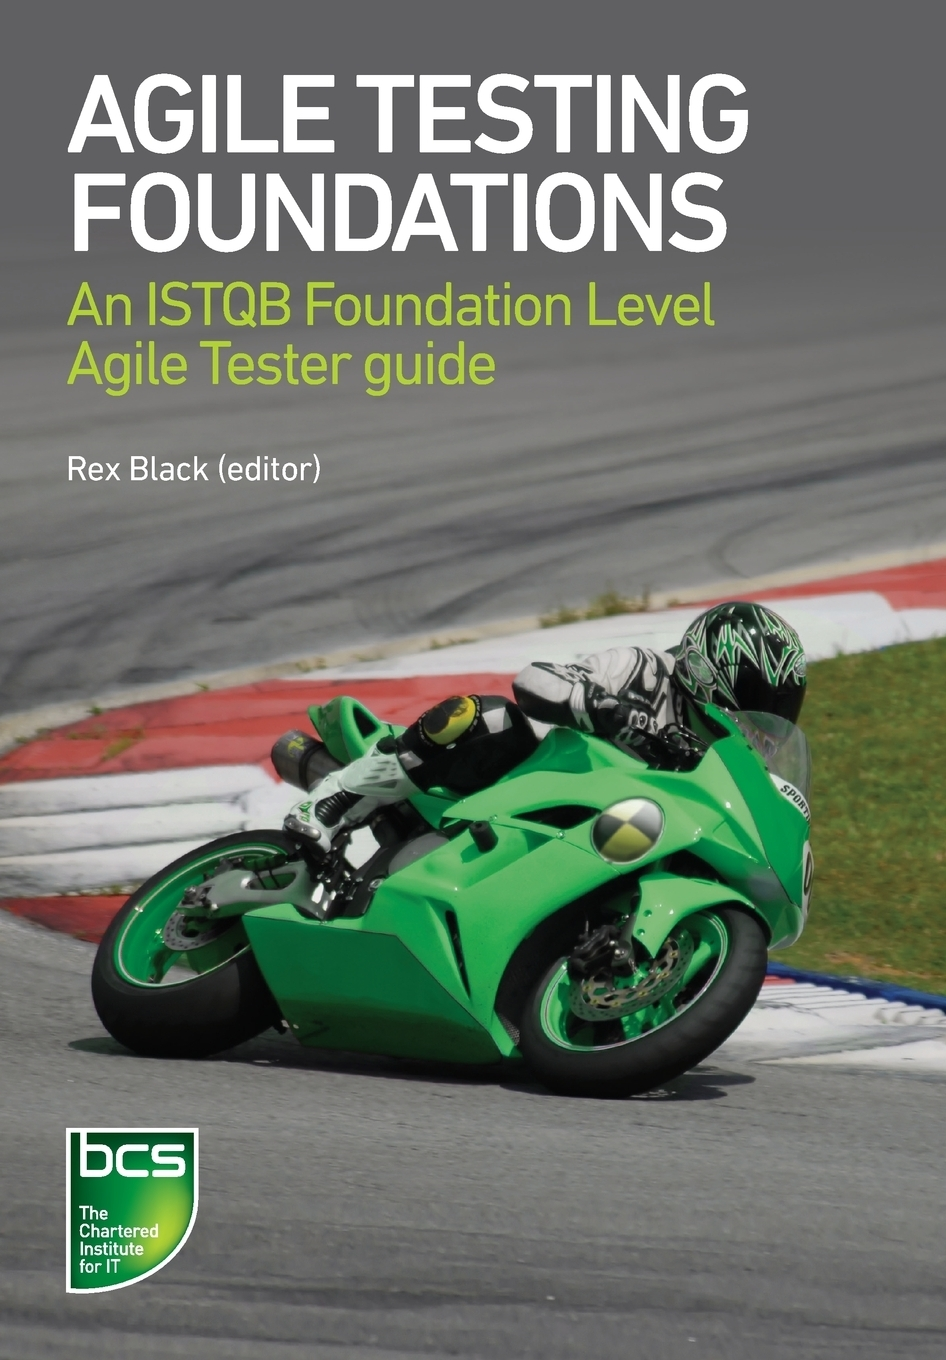 Gerry Coleman, Marie Walsh Agile Testing Foundations. An ISTQB Foundation Level Agile Tester guide jeff younker foundations of agile python development